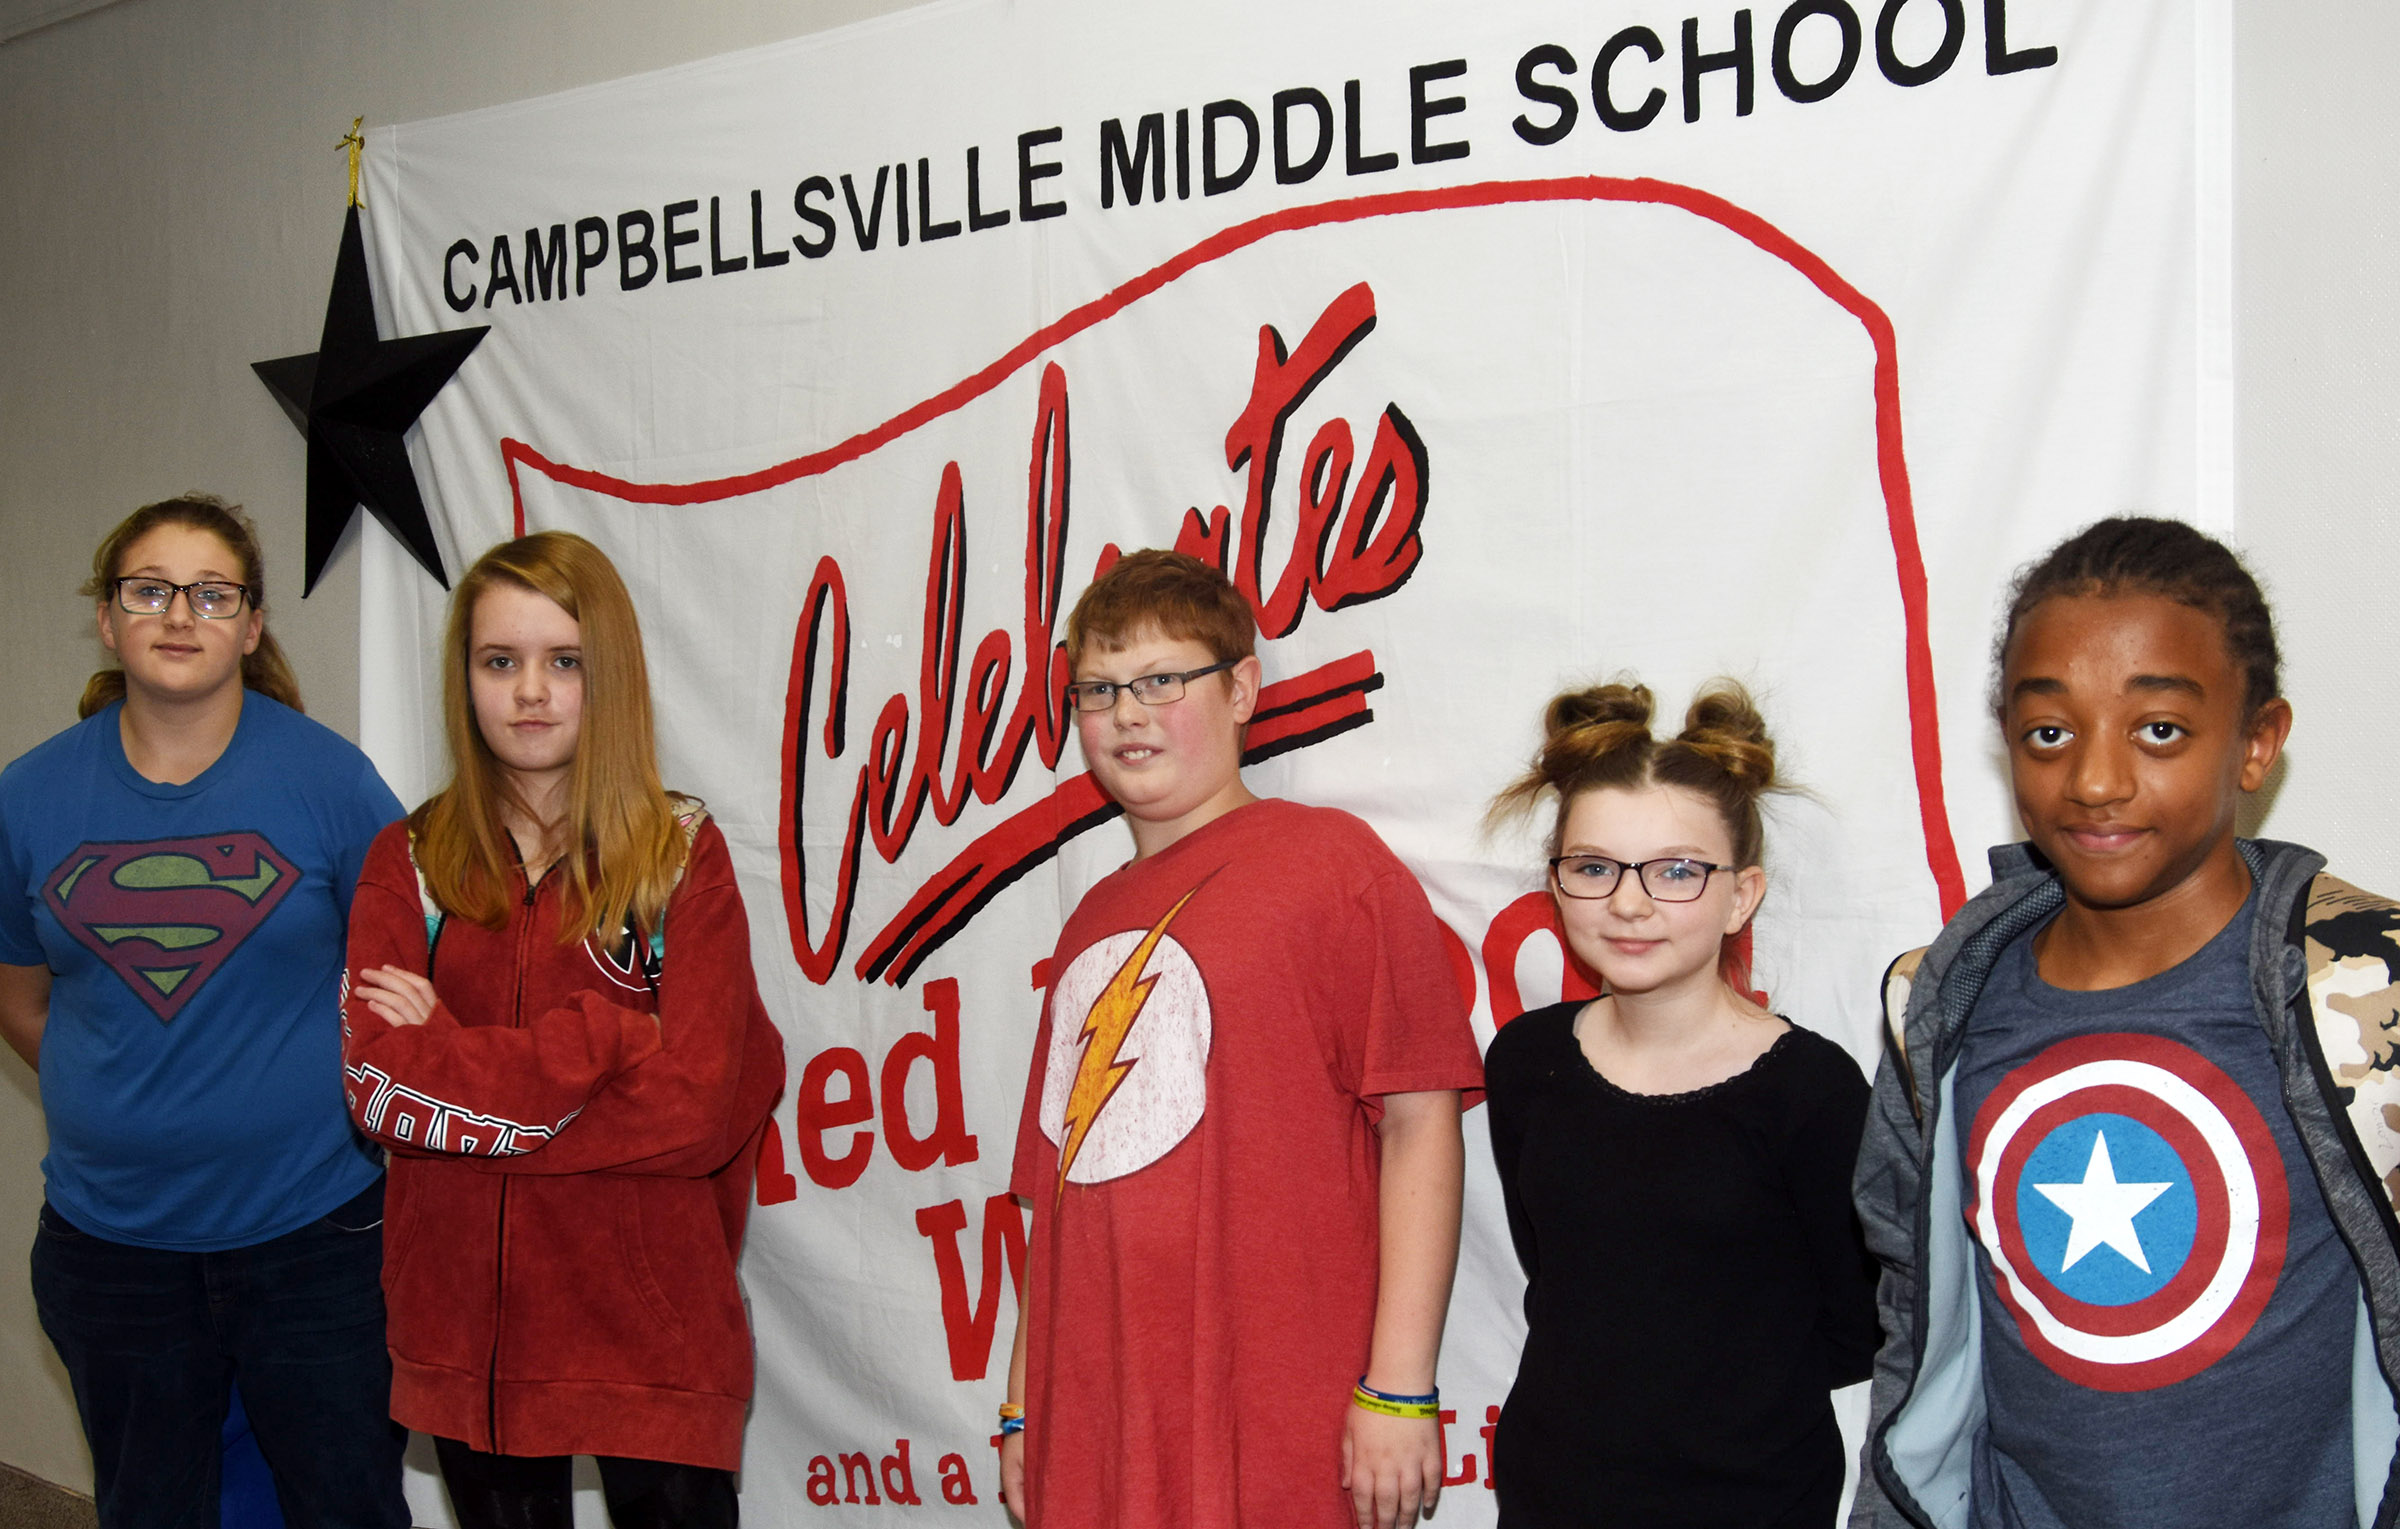 Dress-up day winners were, from left, eighth-grader Jasmine Daniels, seventh-grader Jaylie Moore, sixth-graders Aidan Phillips and Morgan Spears and eighth-grader Zamar Owens. Absent from the photo is seventh-grader Nathan McFarland.